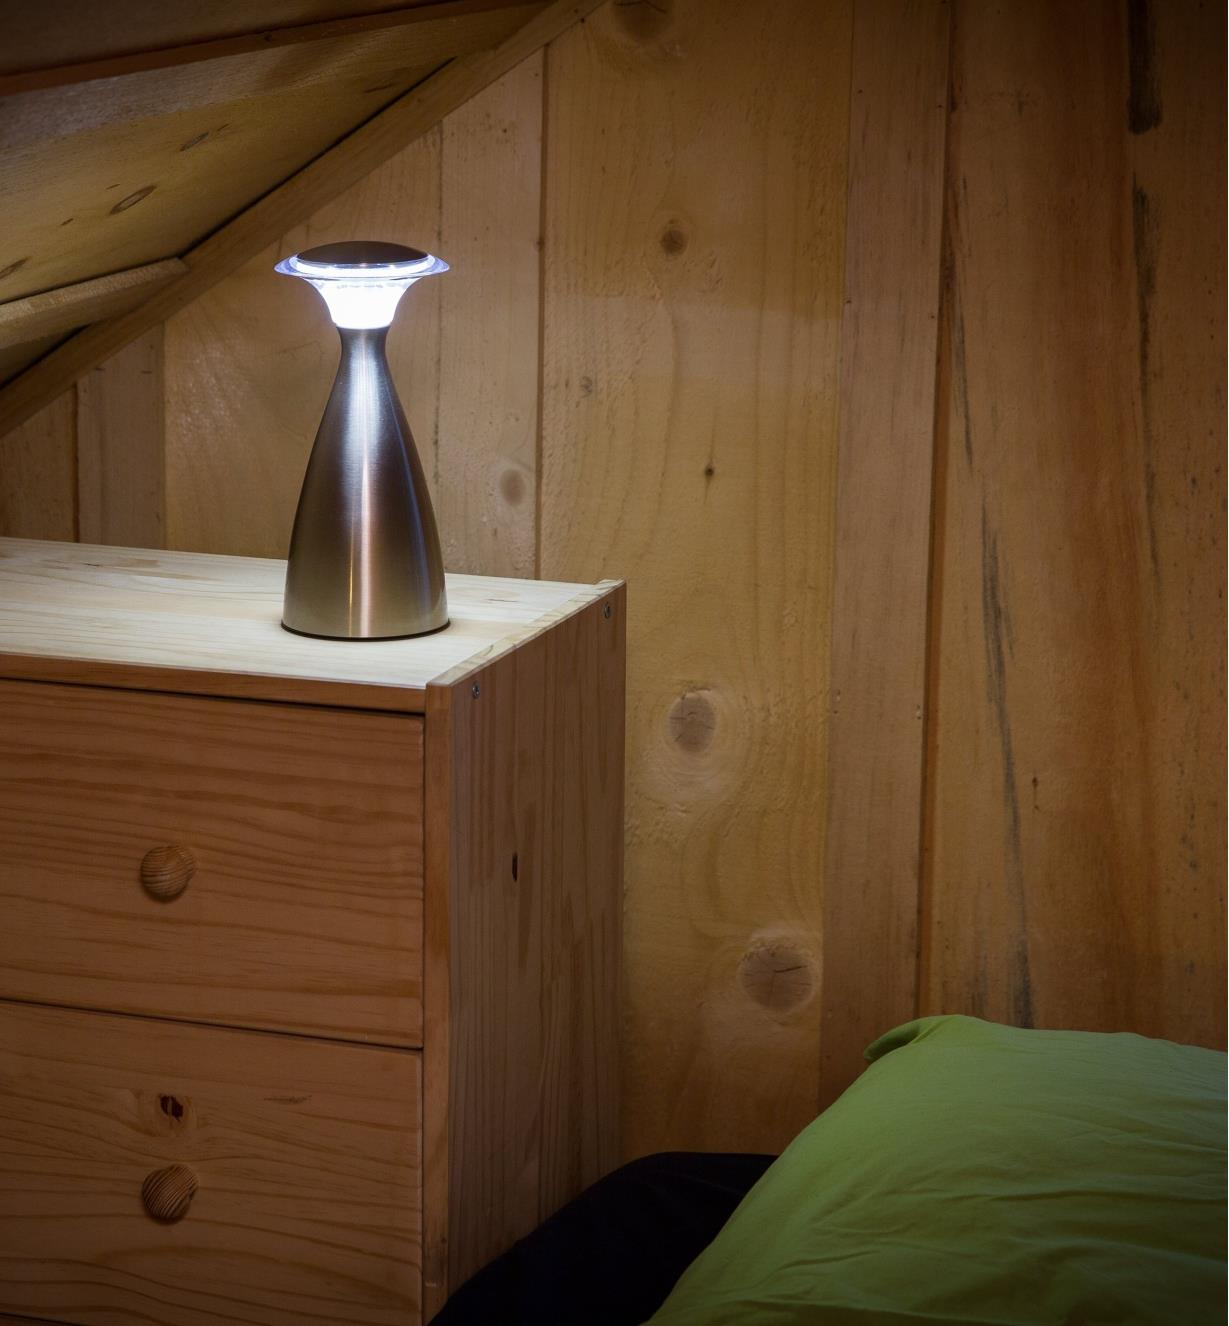 Lanterna Lamp on a dresser beside a bed